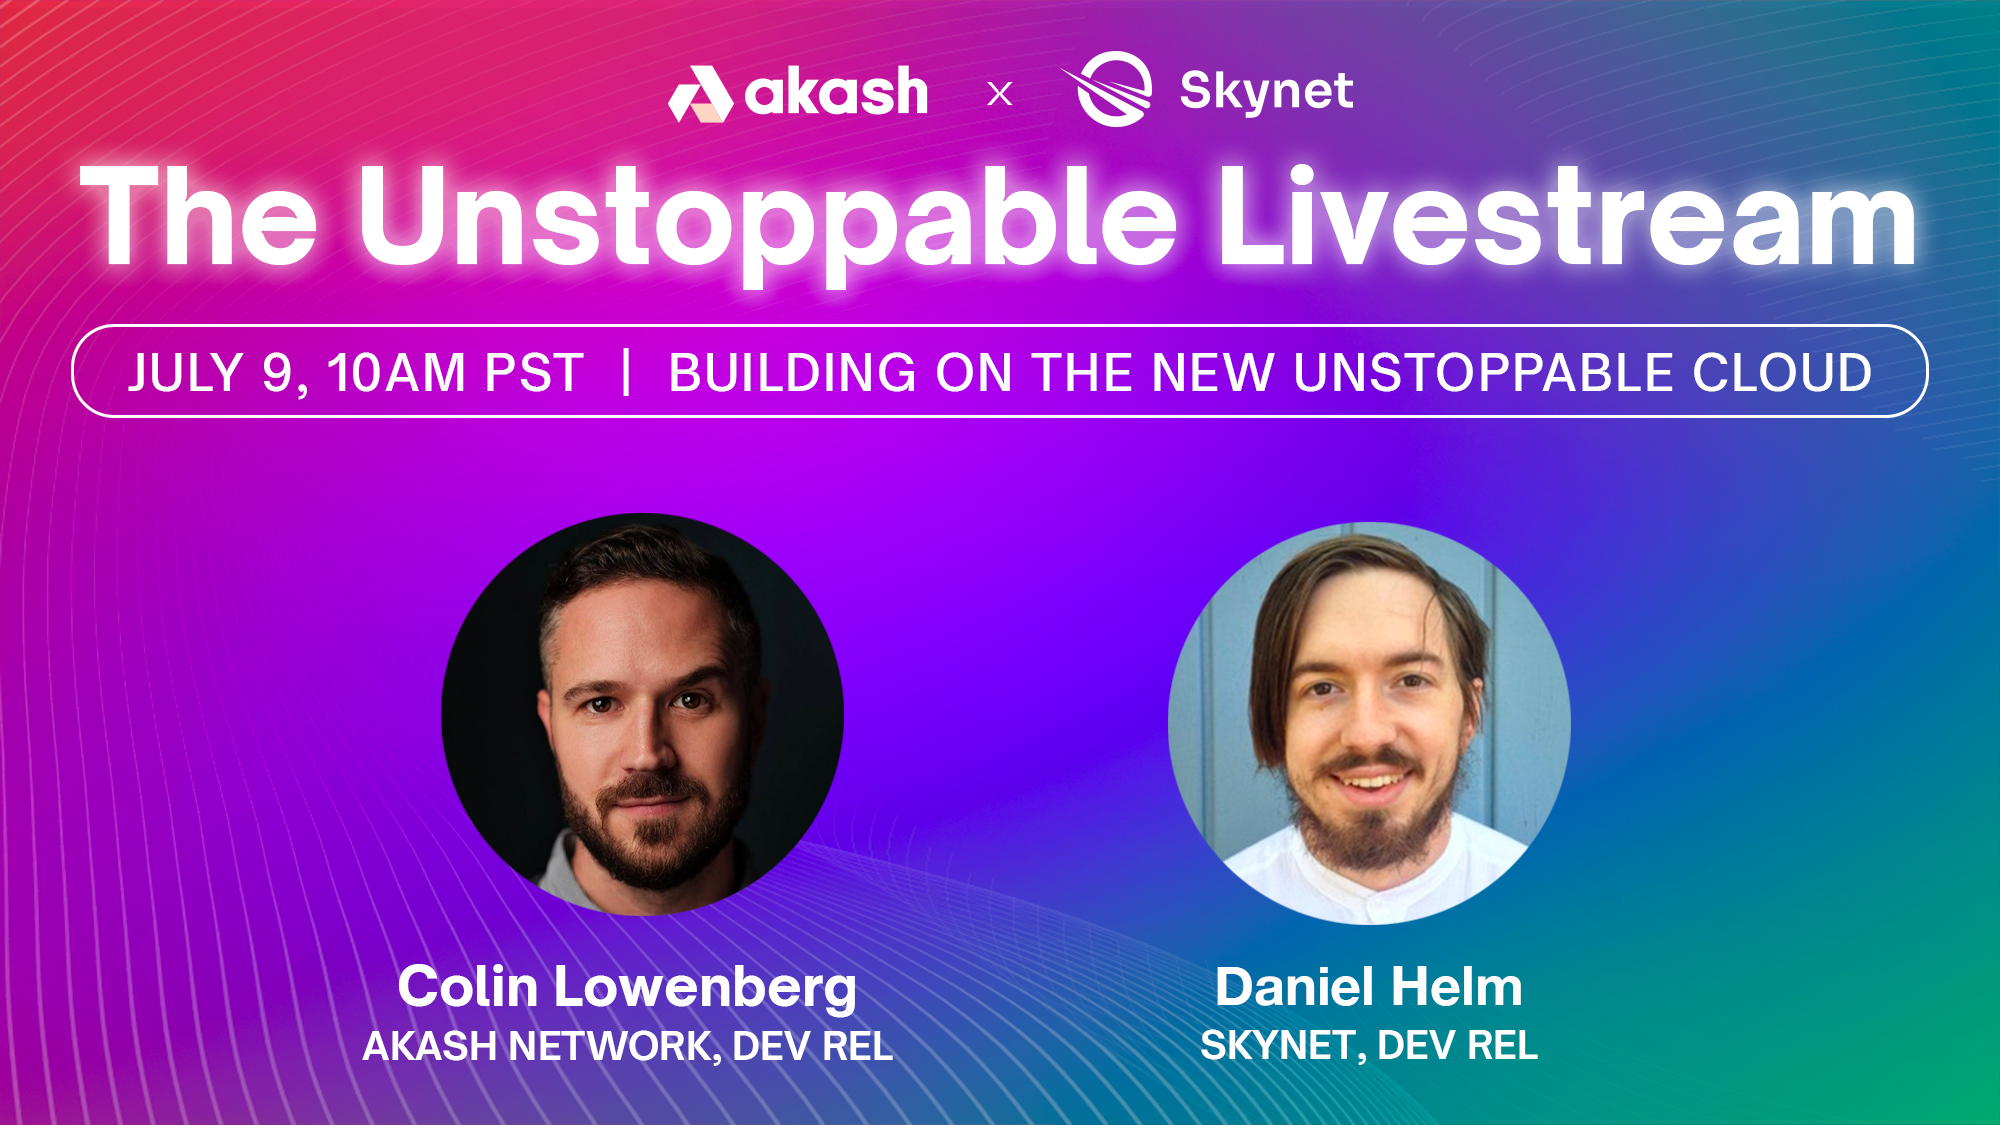 Building on the New Unstoppable Cloud